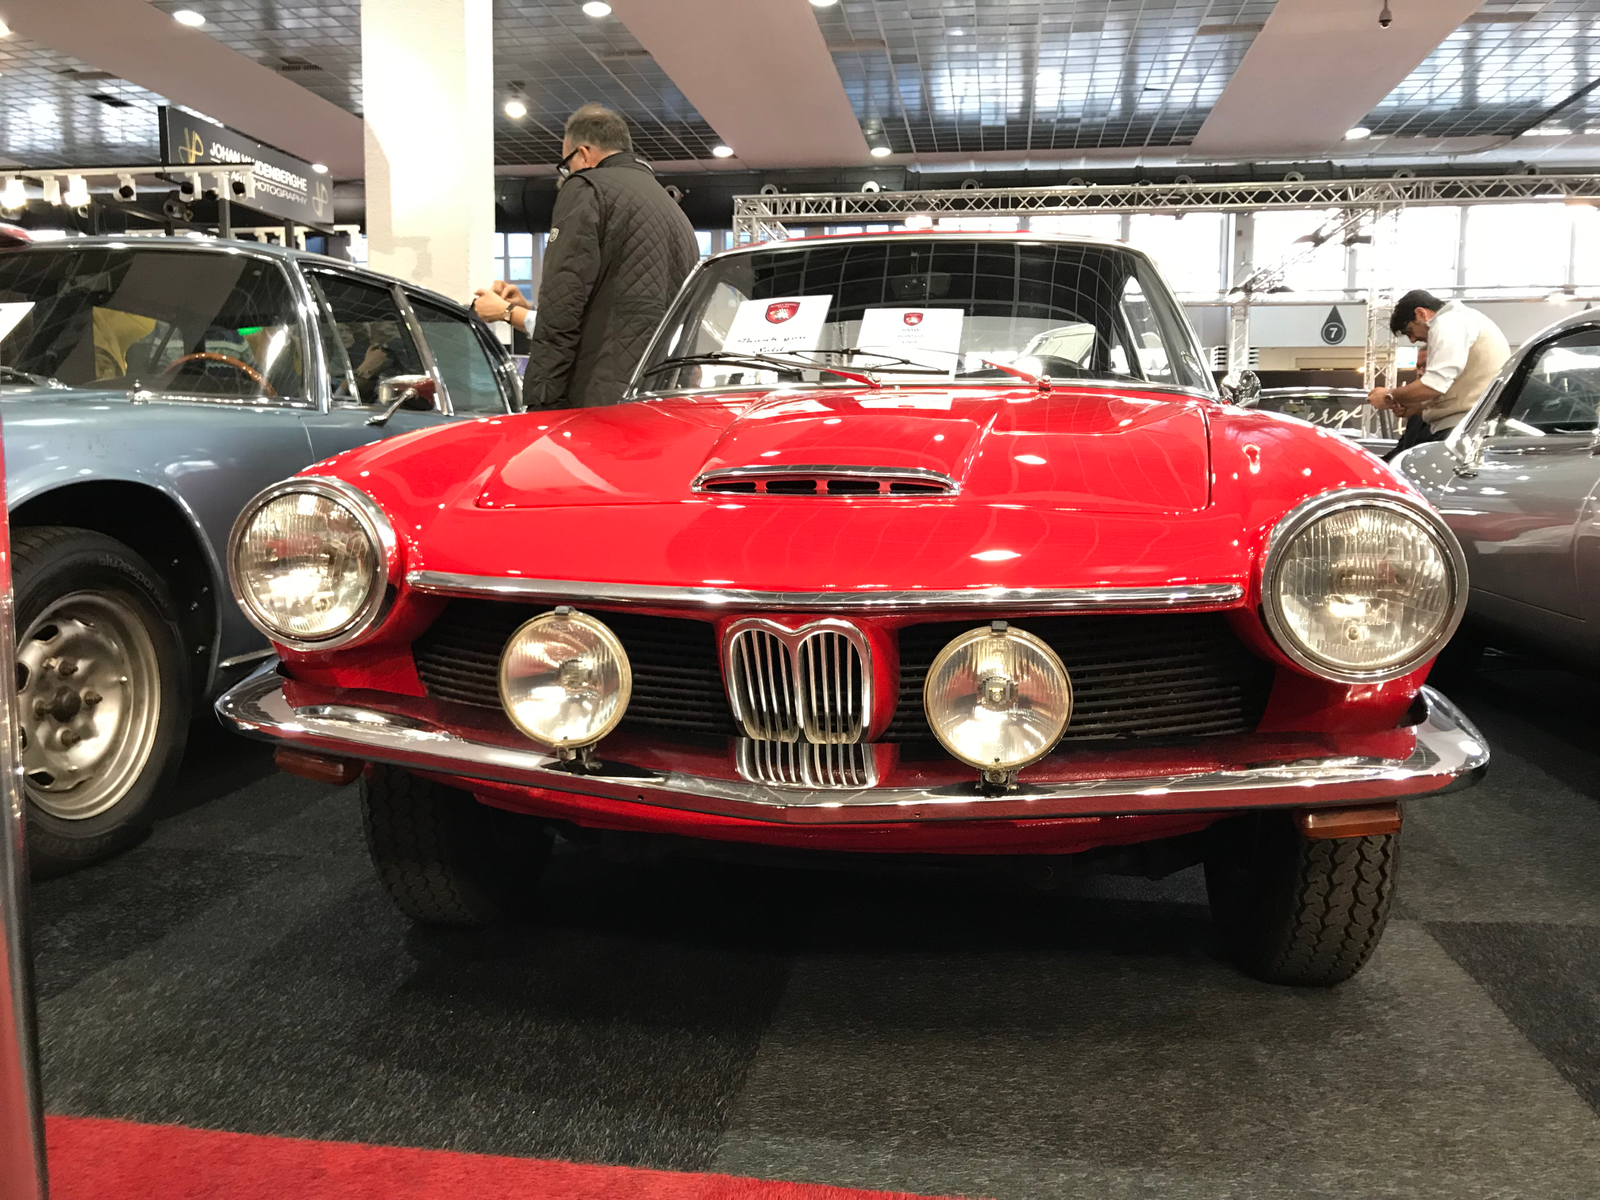 BMW 1600 GT. After BMW bought Glas, they kept building these beautiful cars for a whlle powered by their own 1600 motor. A little smaller than the old Glas engine, but easier to manufacture since most stuff at Glas was still built by hand.